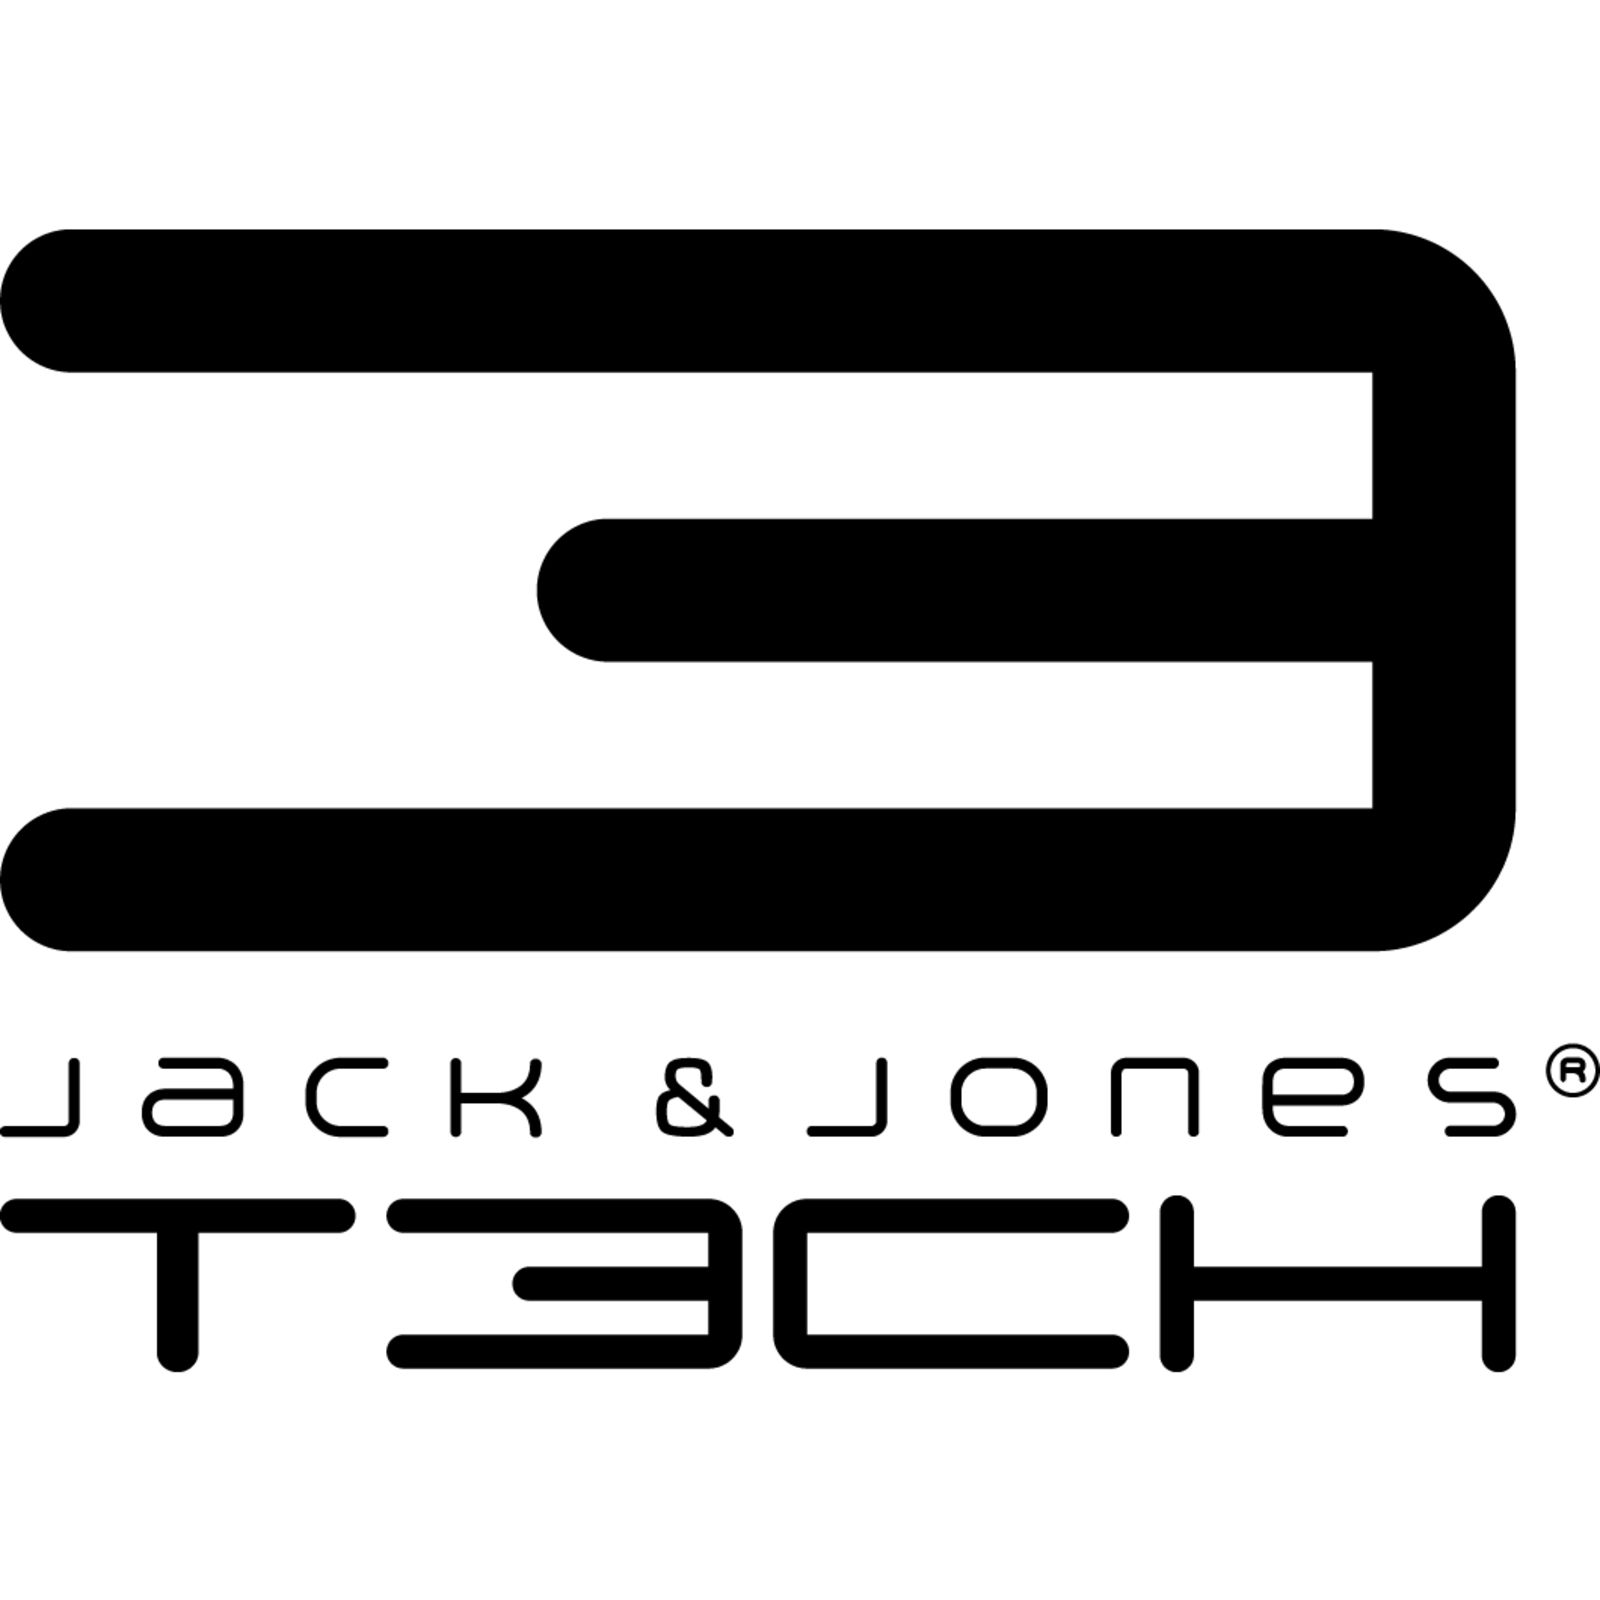 JACK & JONES | TECH (Image 1)